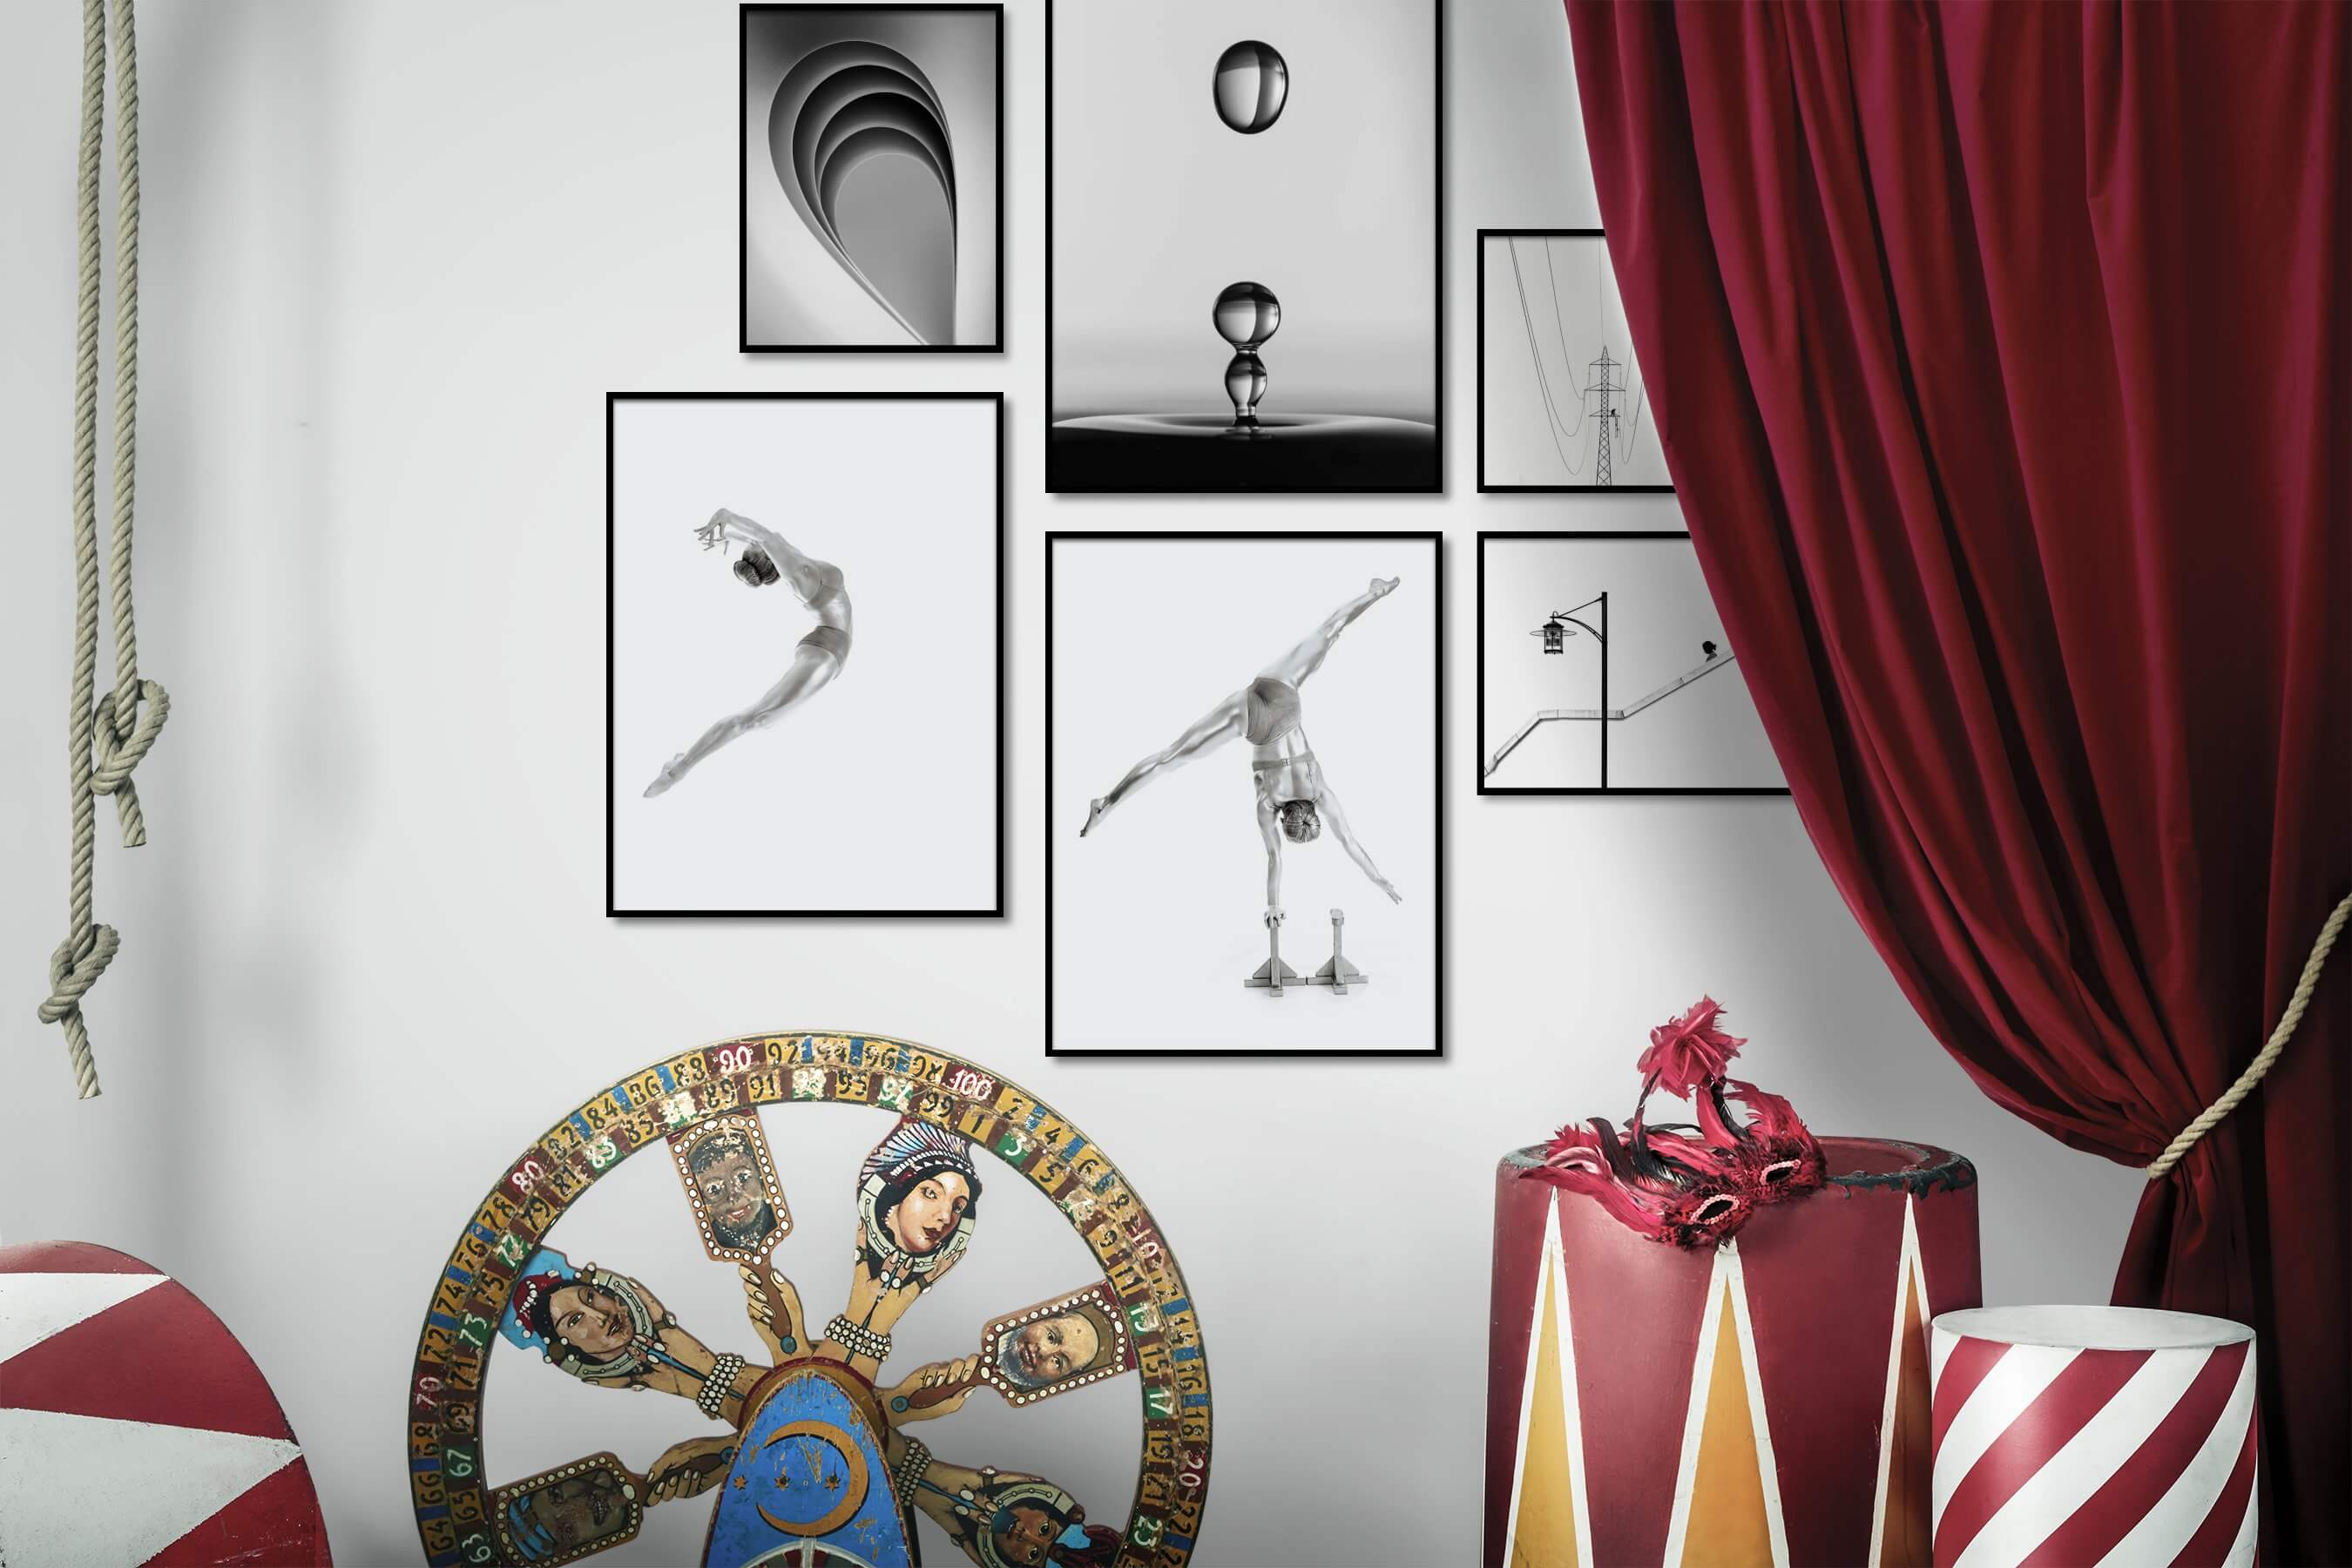 Gallery wall idea with six framed pictures arranged on a wall depicting Black & White, For the Minimalist, Mindfulness, Fashion & Beauty, Bright Tones, and City Life